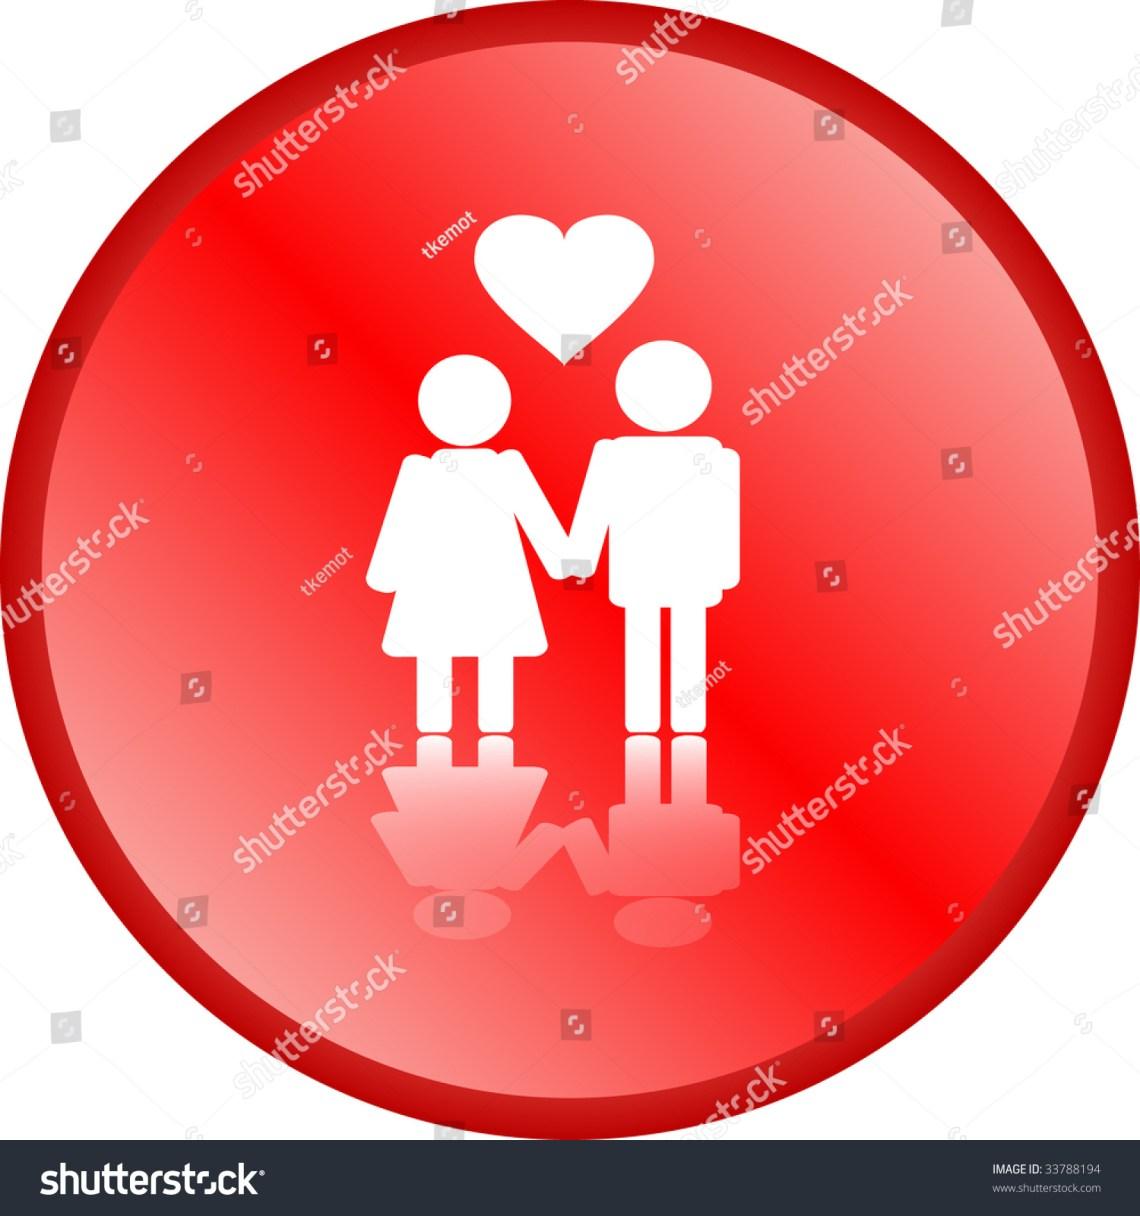 Download Red Love Couple Button Stock Vector Illustration 33788194 ...